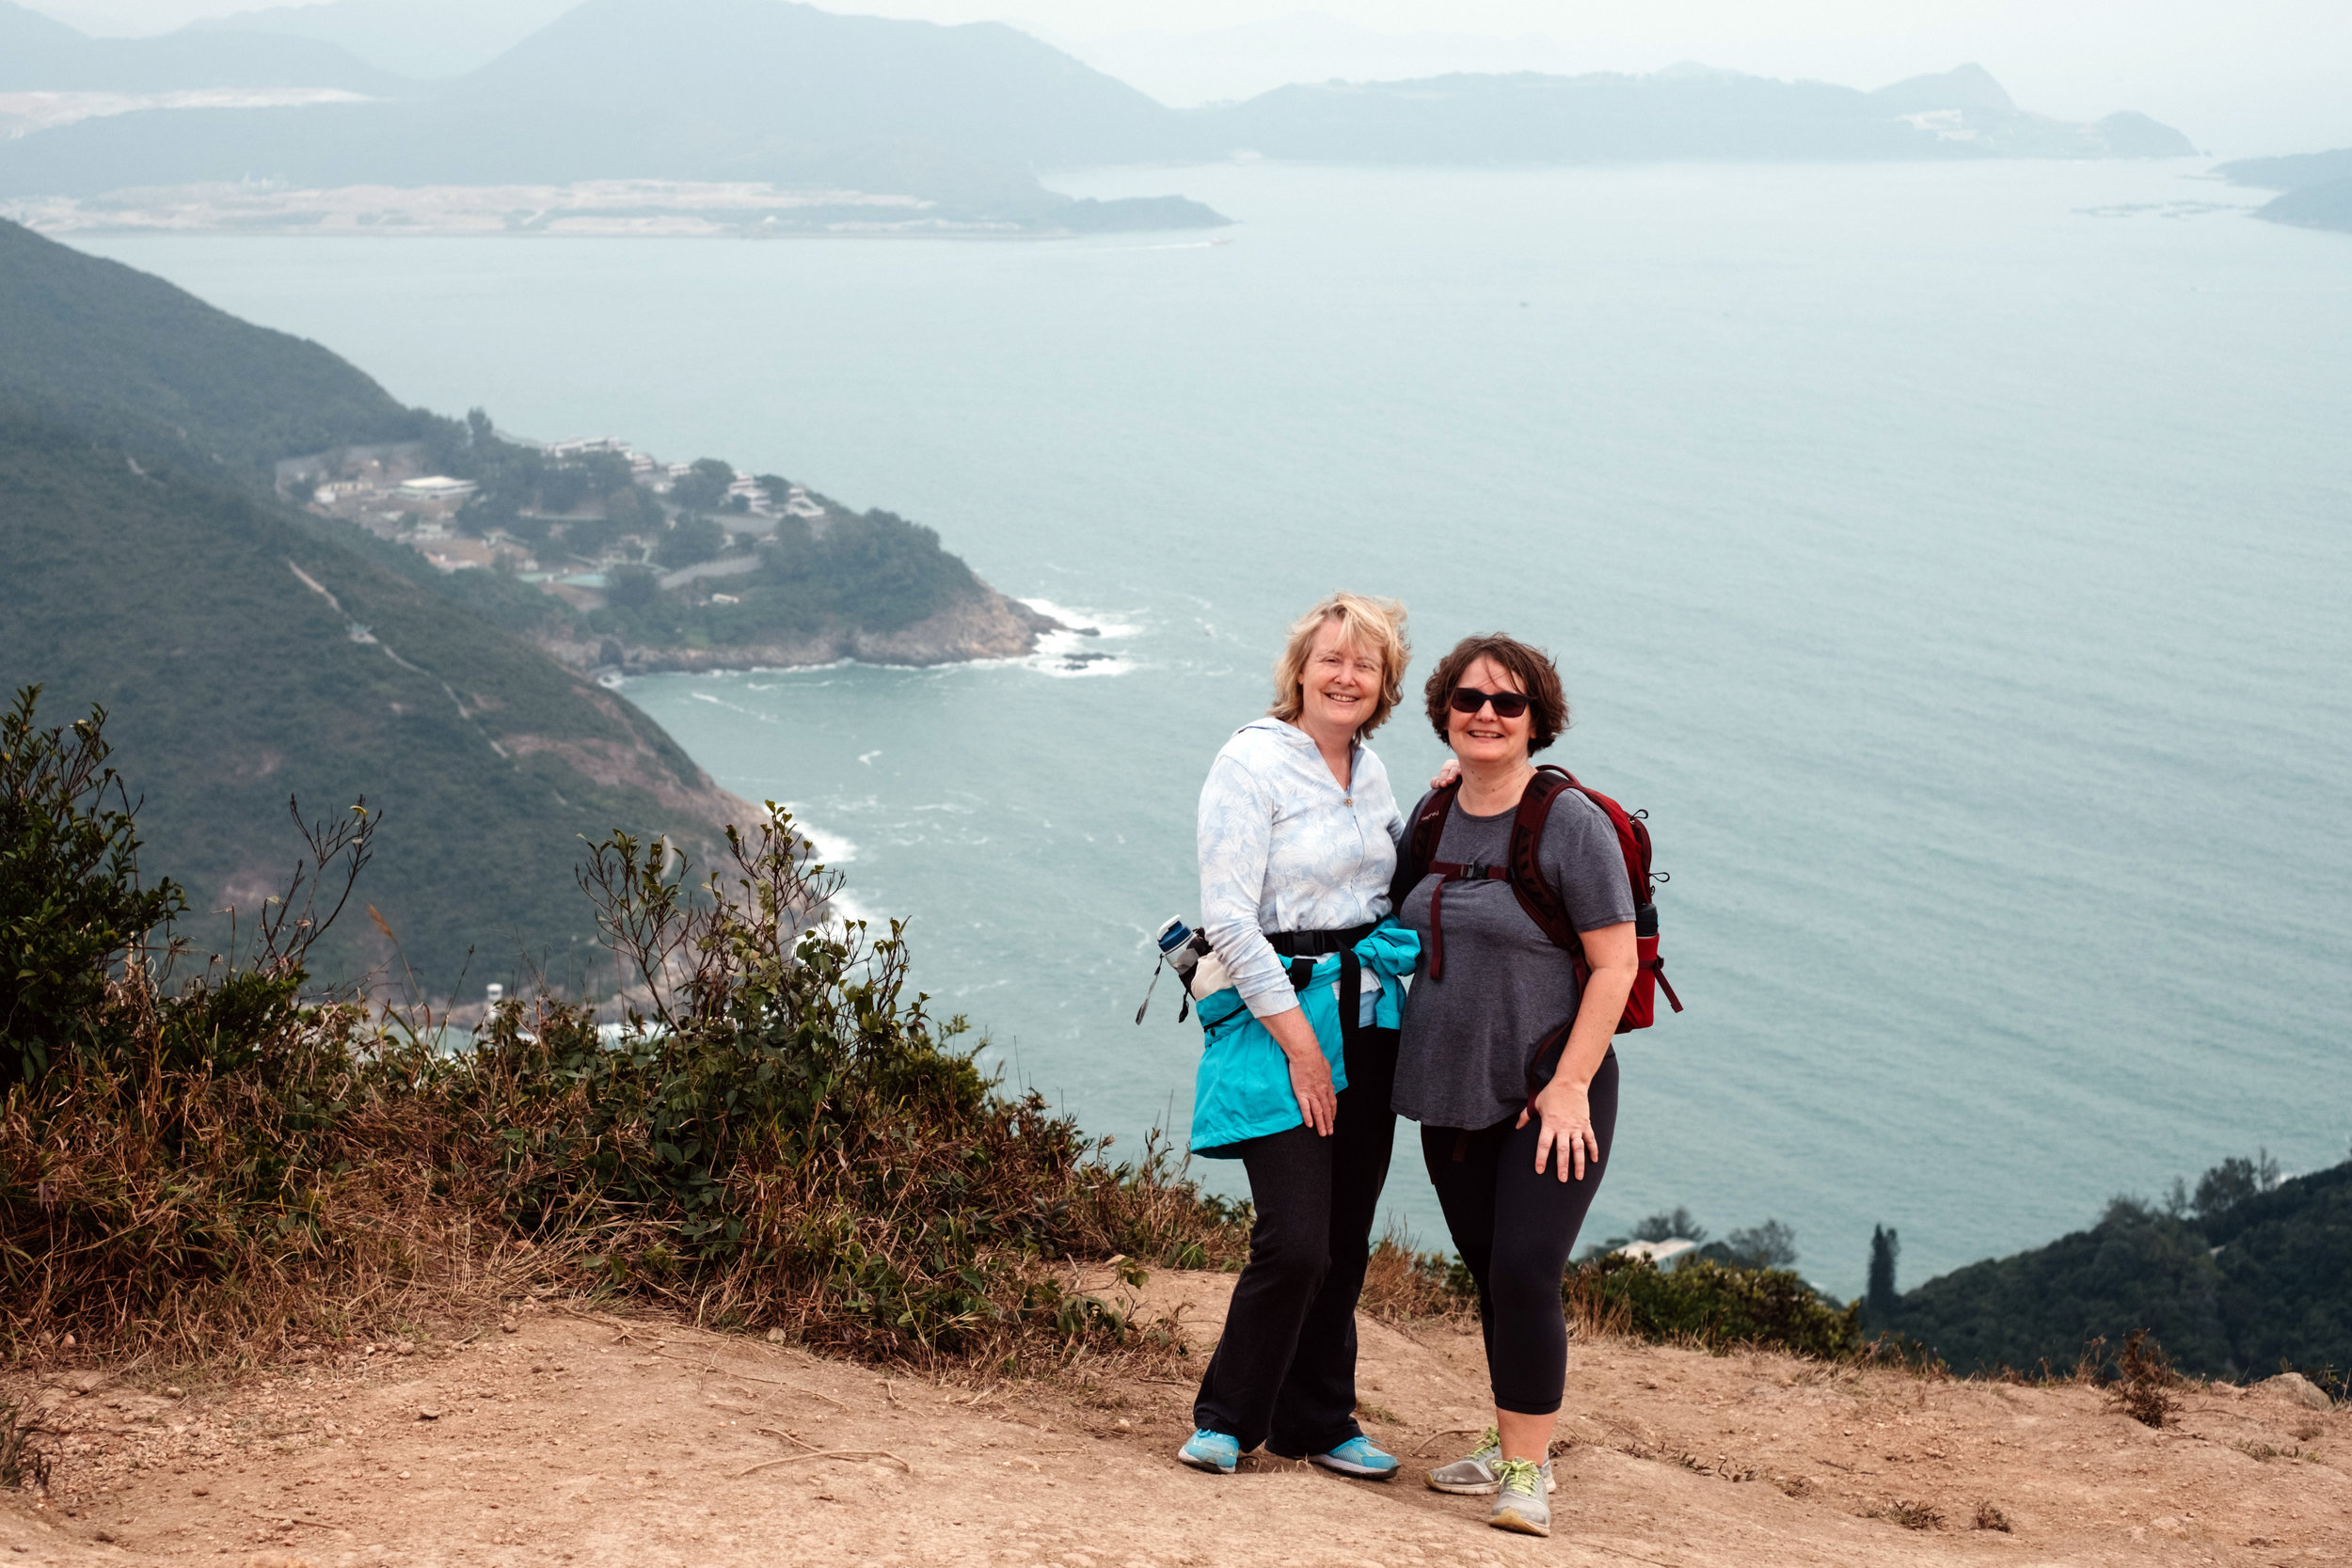 Helen and Diana at the top of the Dragon's Back Trail in Hong Kong